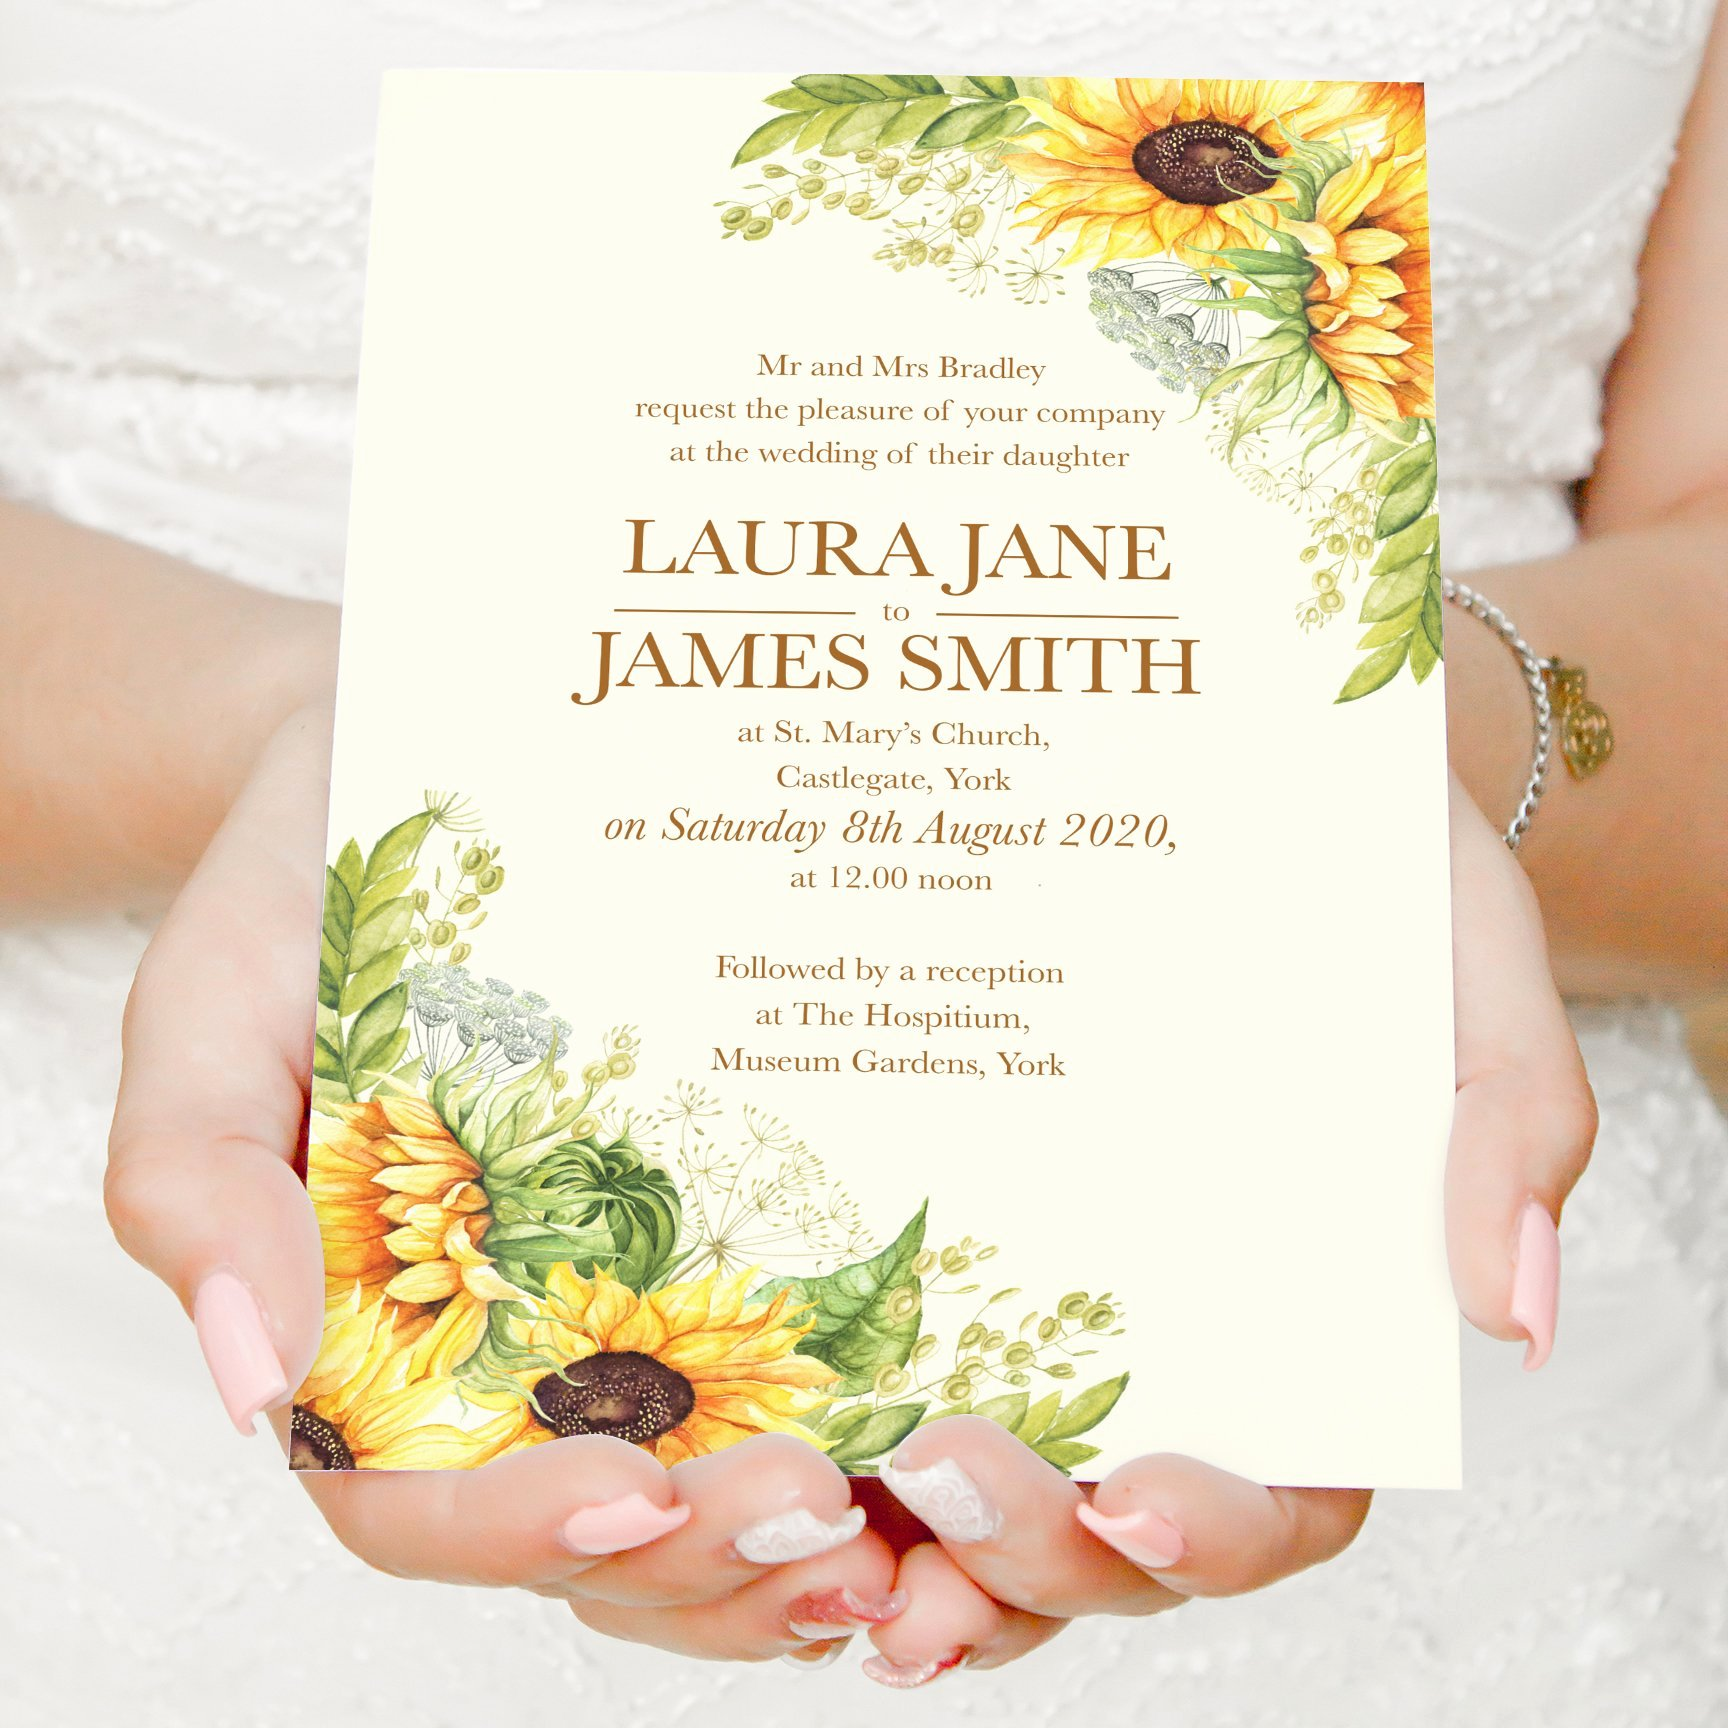 Rustic Sunflower Wedding Invitations Fresh Rustic Sunflower Wedding Invitations Rustic Wedding Country Wedding – Stnstationery